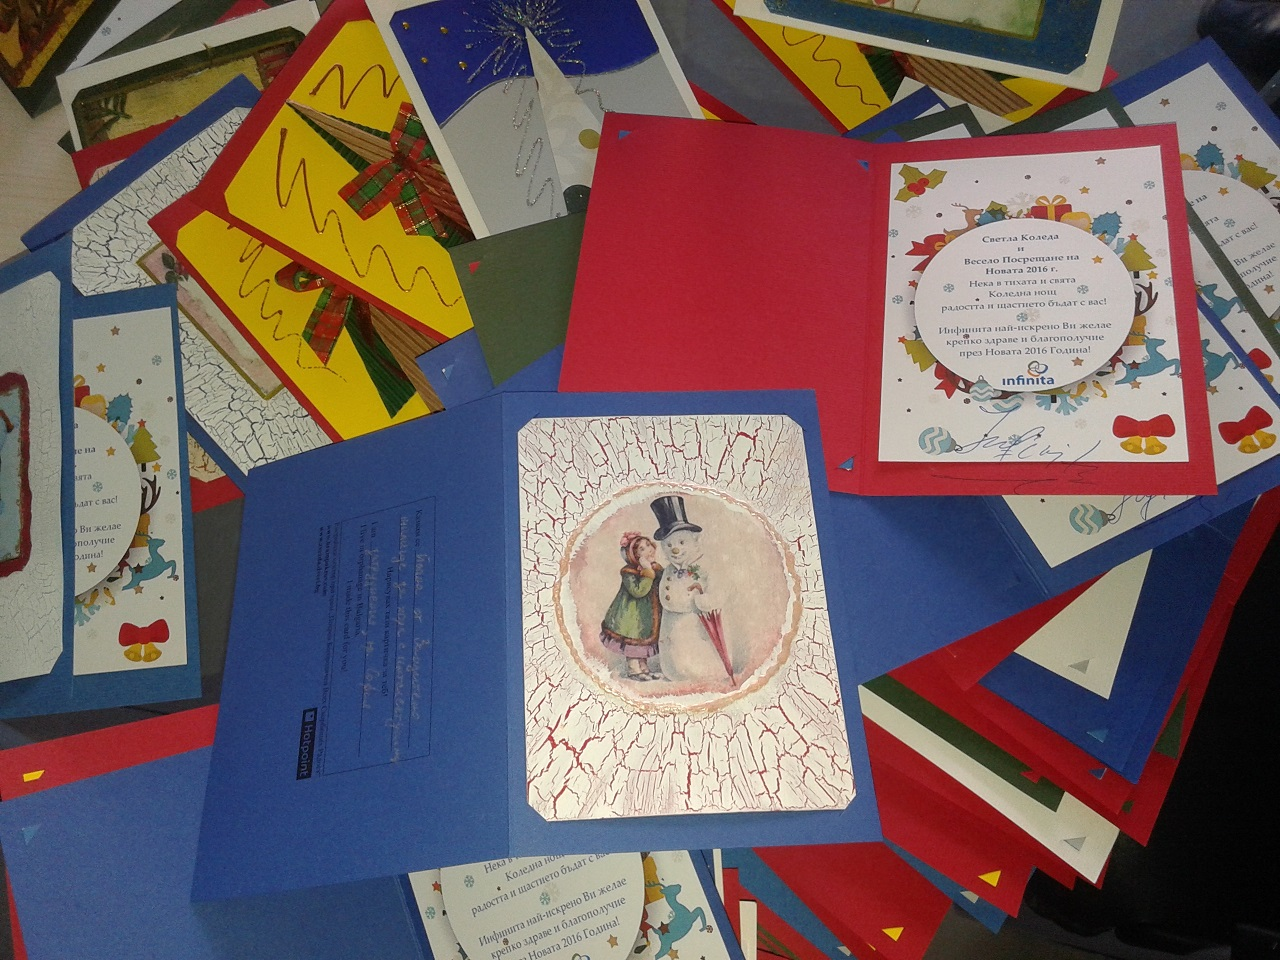 Chrismas-card-Infinita-2015-child-donation